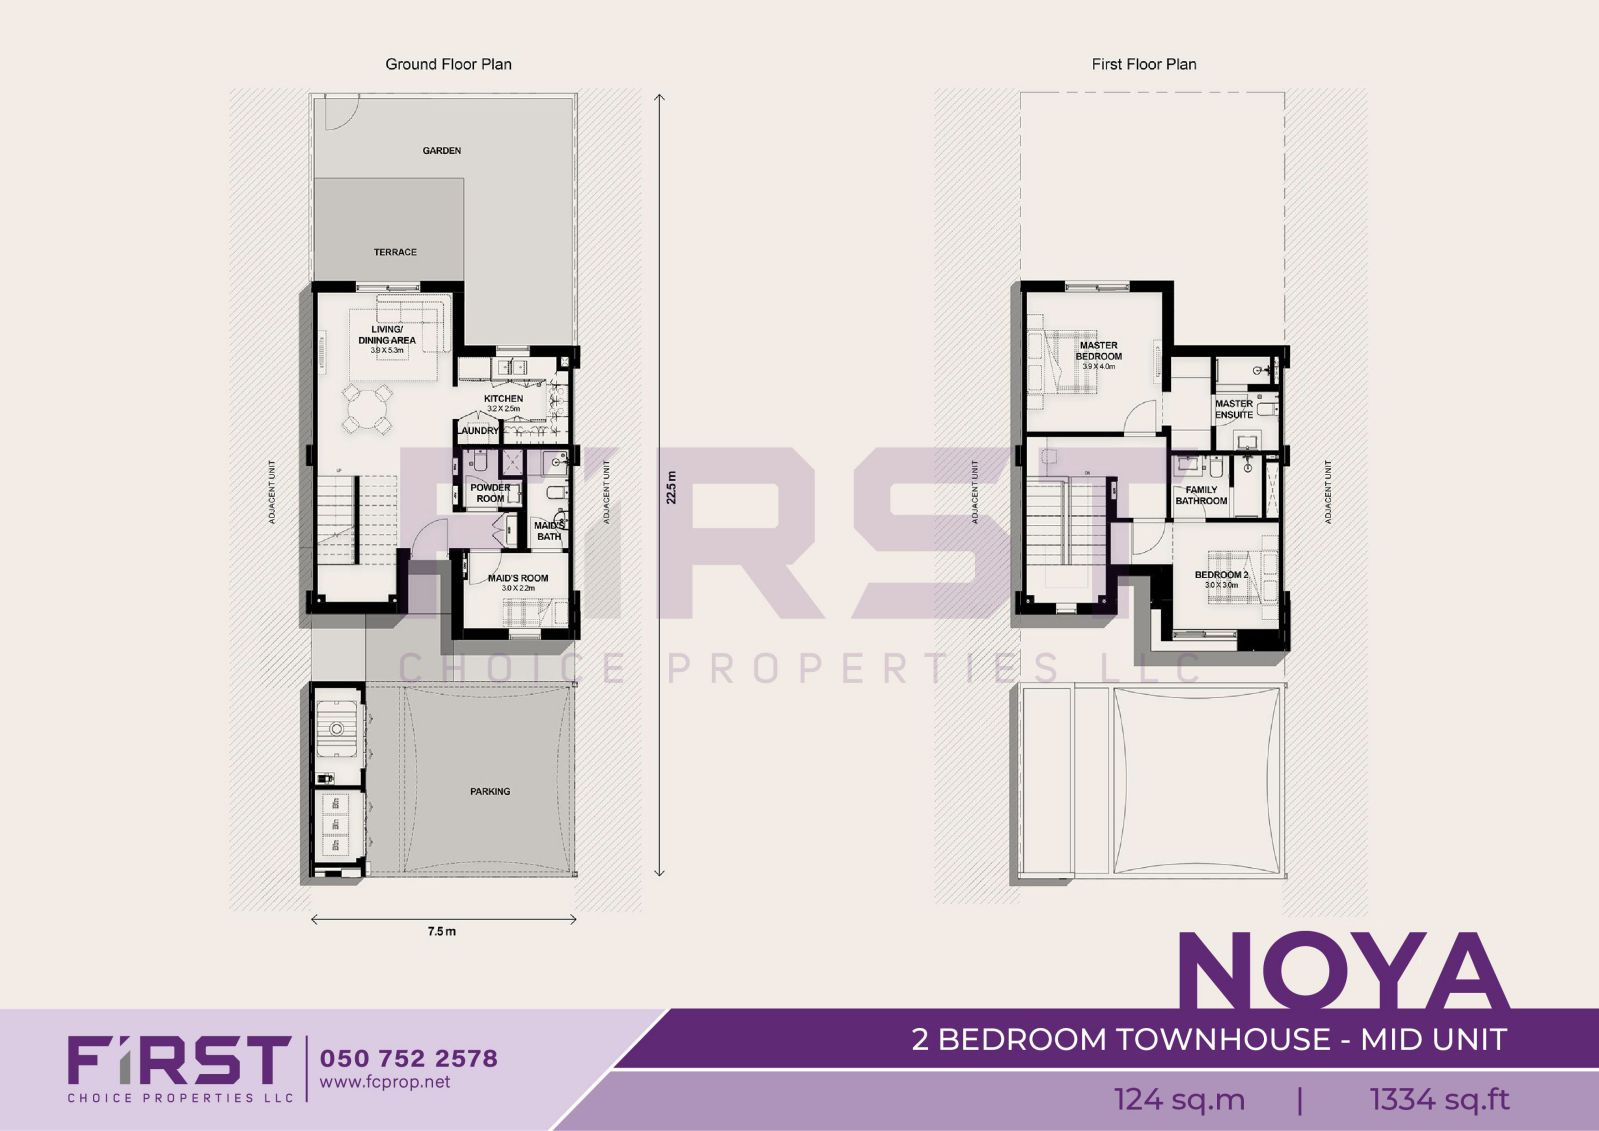 Floor Plan of 2 Bedroom Townhouse Mid Unit in Noya Yas Island Abu Dhabi UAE 124 sq.m 1334 sq.ft.jpg